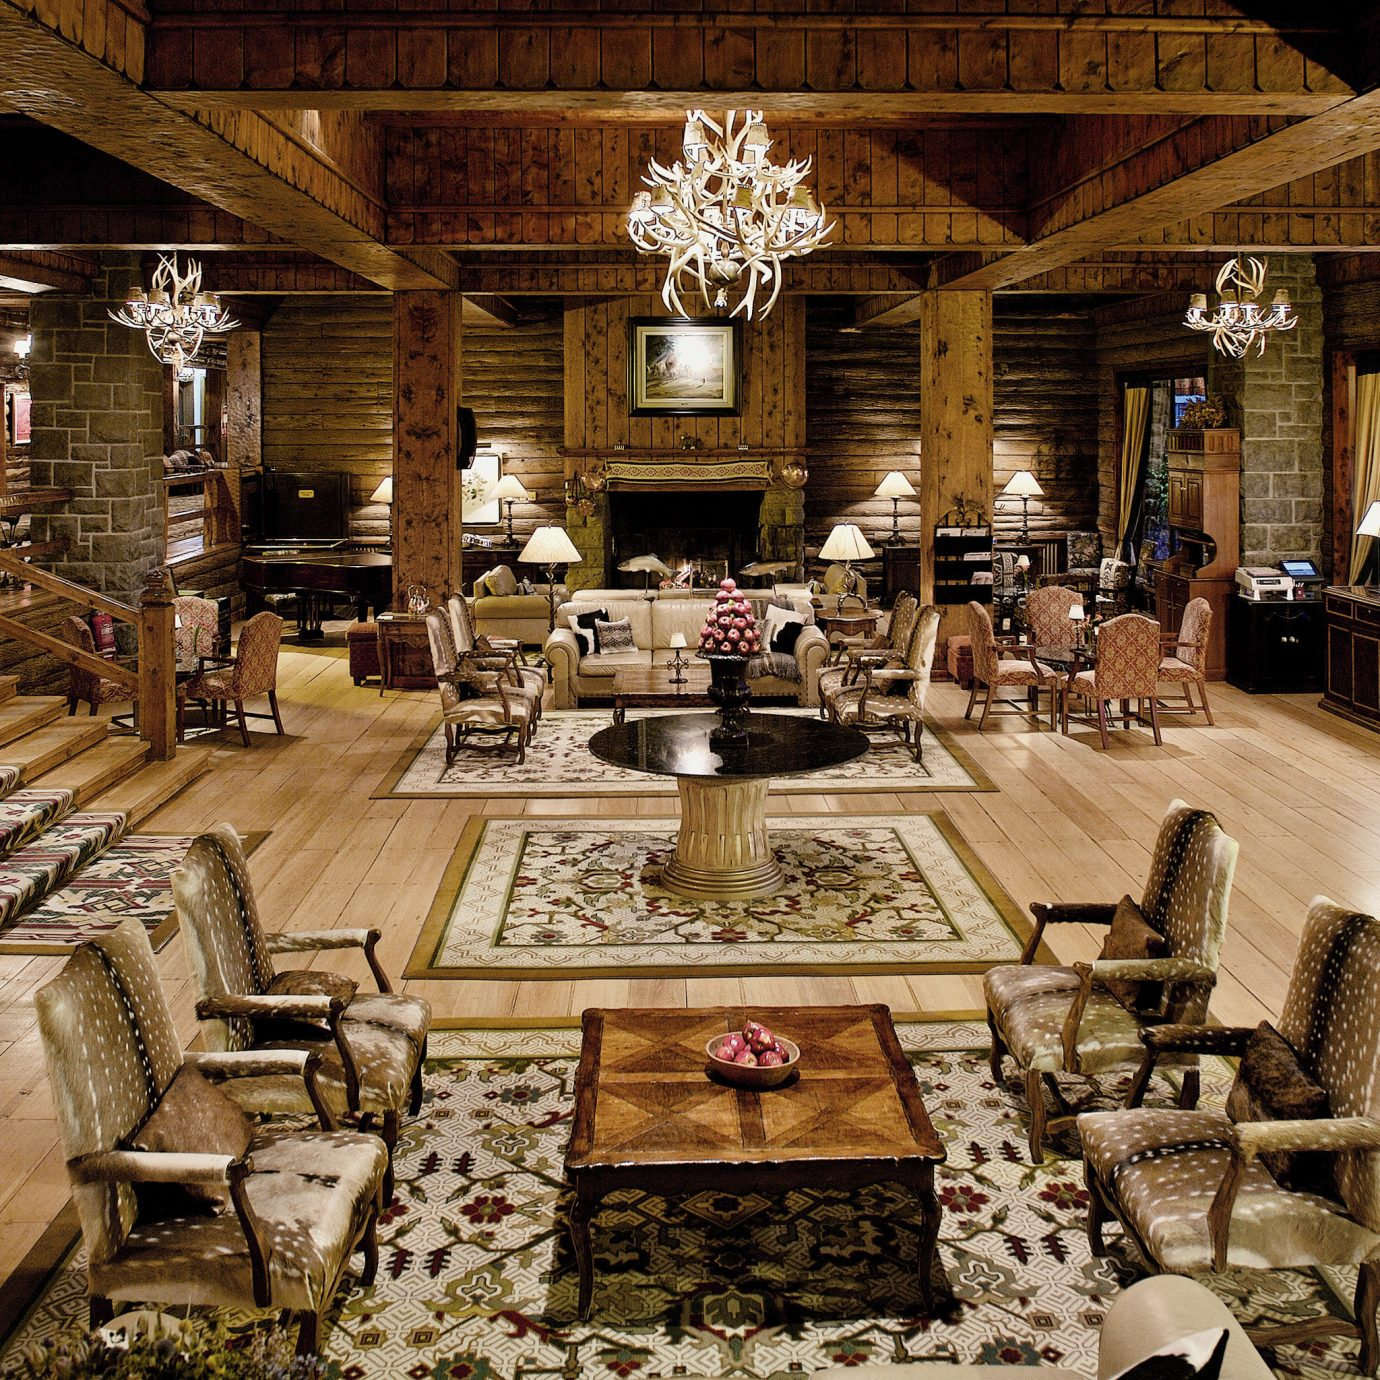 Fireplace Hotels Lobby Lounge Resort Rustic mansion restaurant ancient history